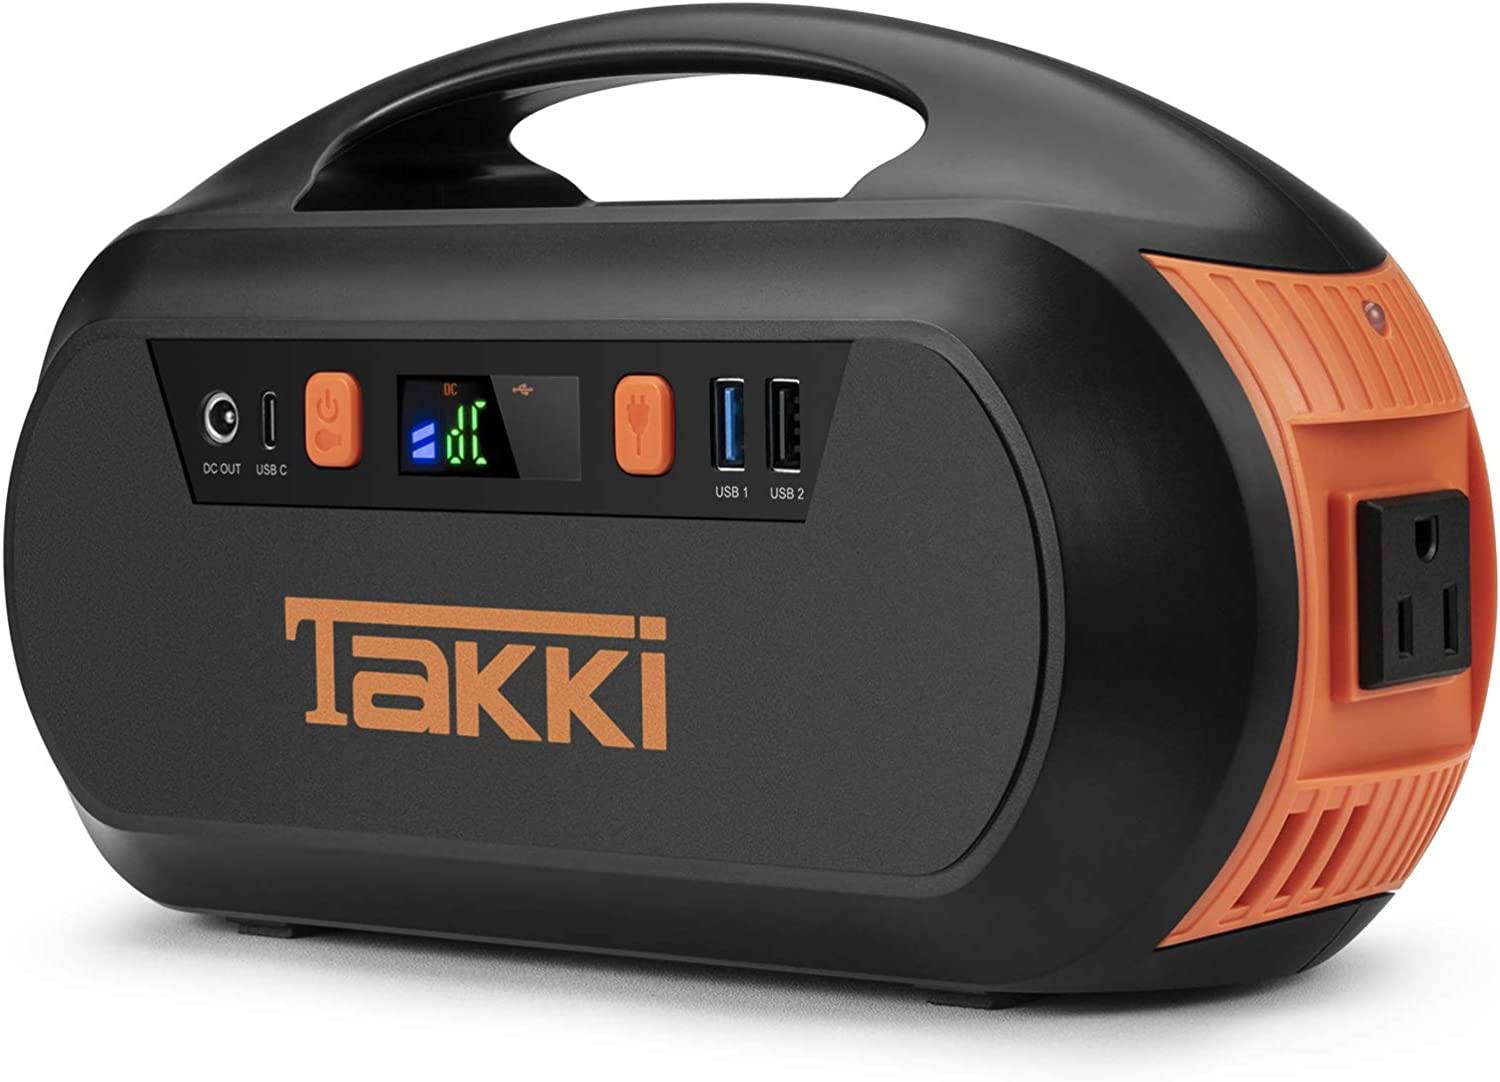 178Wh Portable Power Station, Solar Generator with Battery Pack AC DC Outlet and Camping Lights for CPAP Machine, Home Backup Supply, Emergency, Hurricane, Hunting, Phones (Solar Panel Not Included)